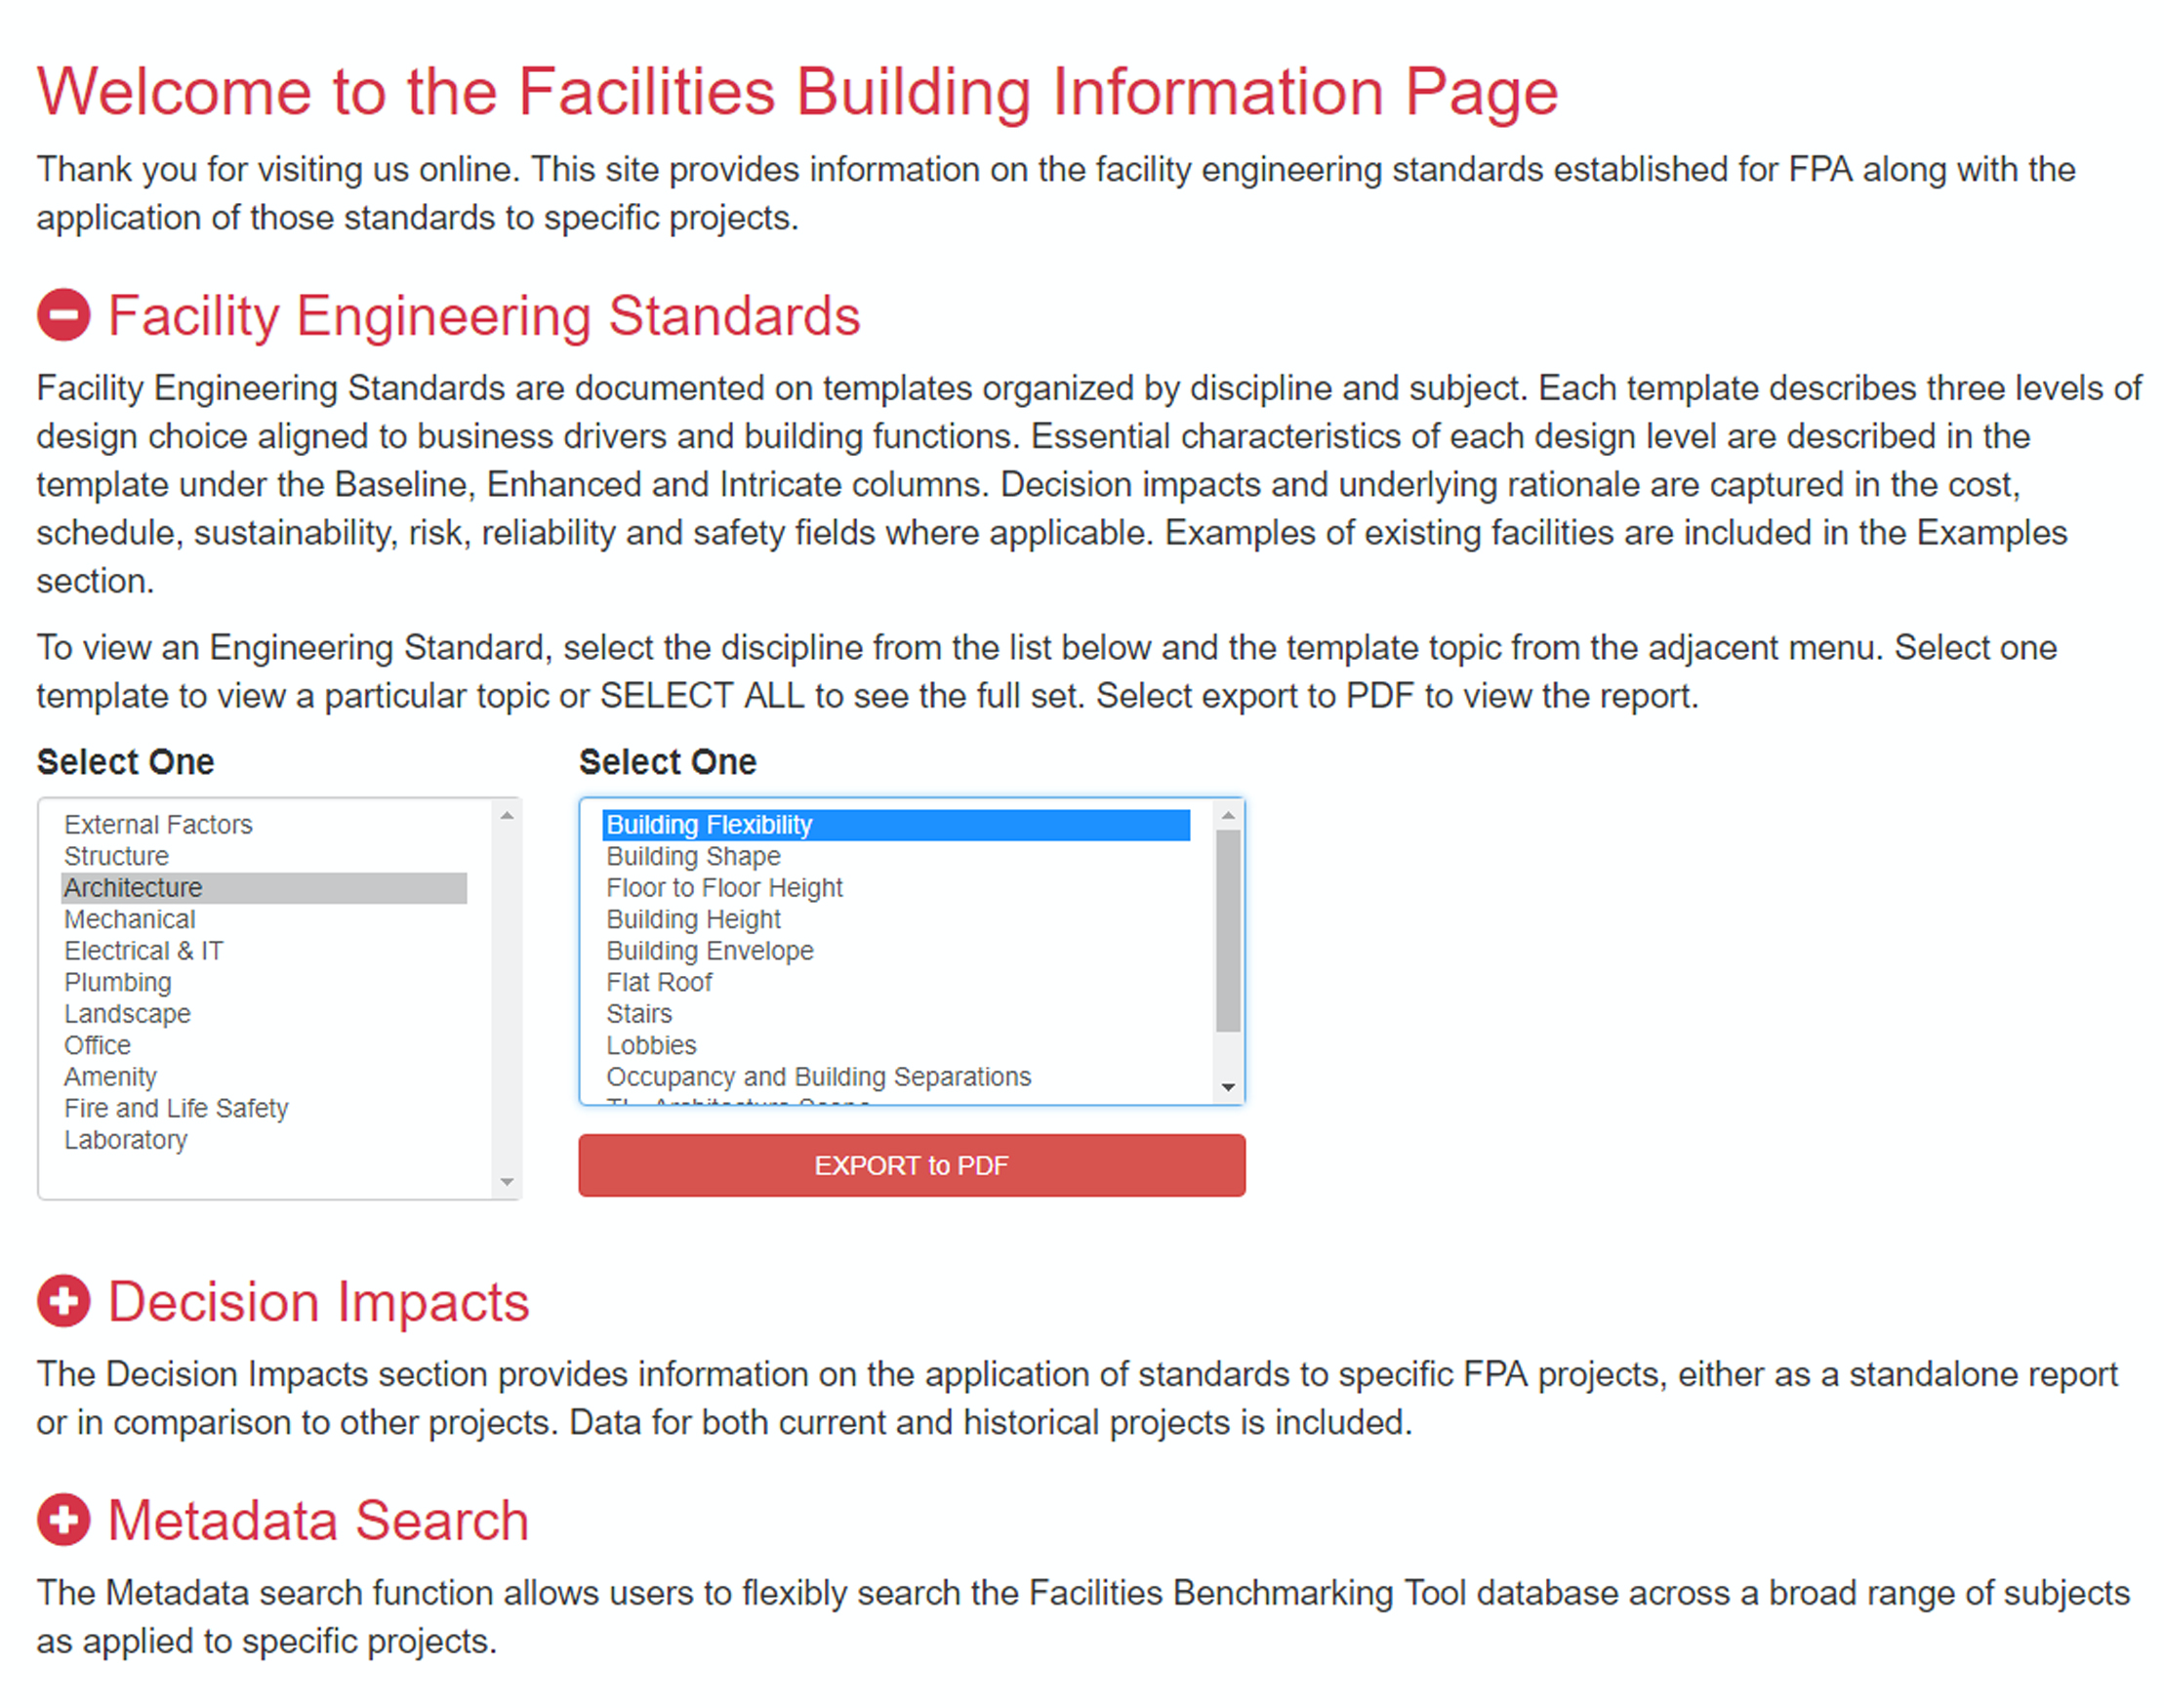 The intranet web interface is used to search the database for facility guidelines, current and historical project decisions and metadata relationships